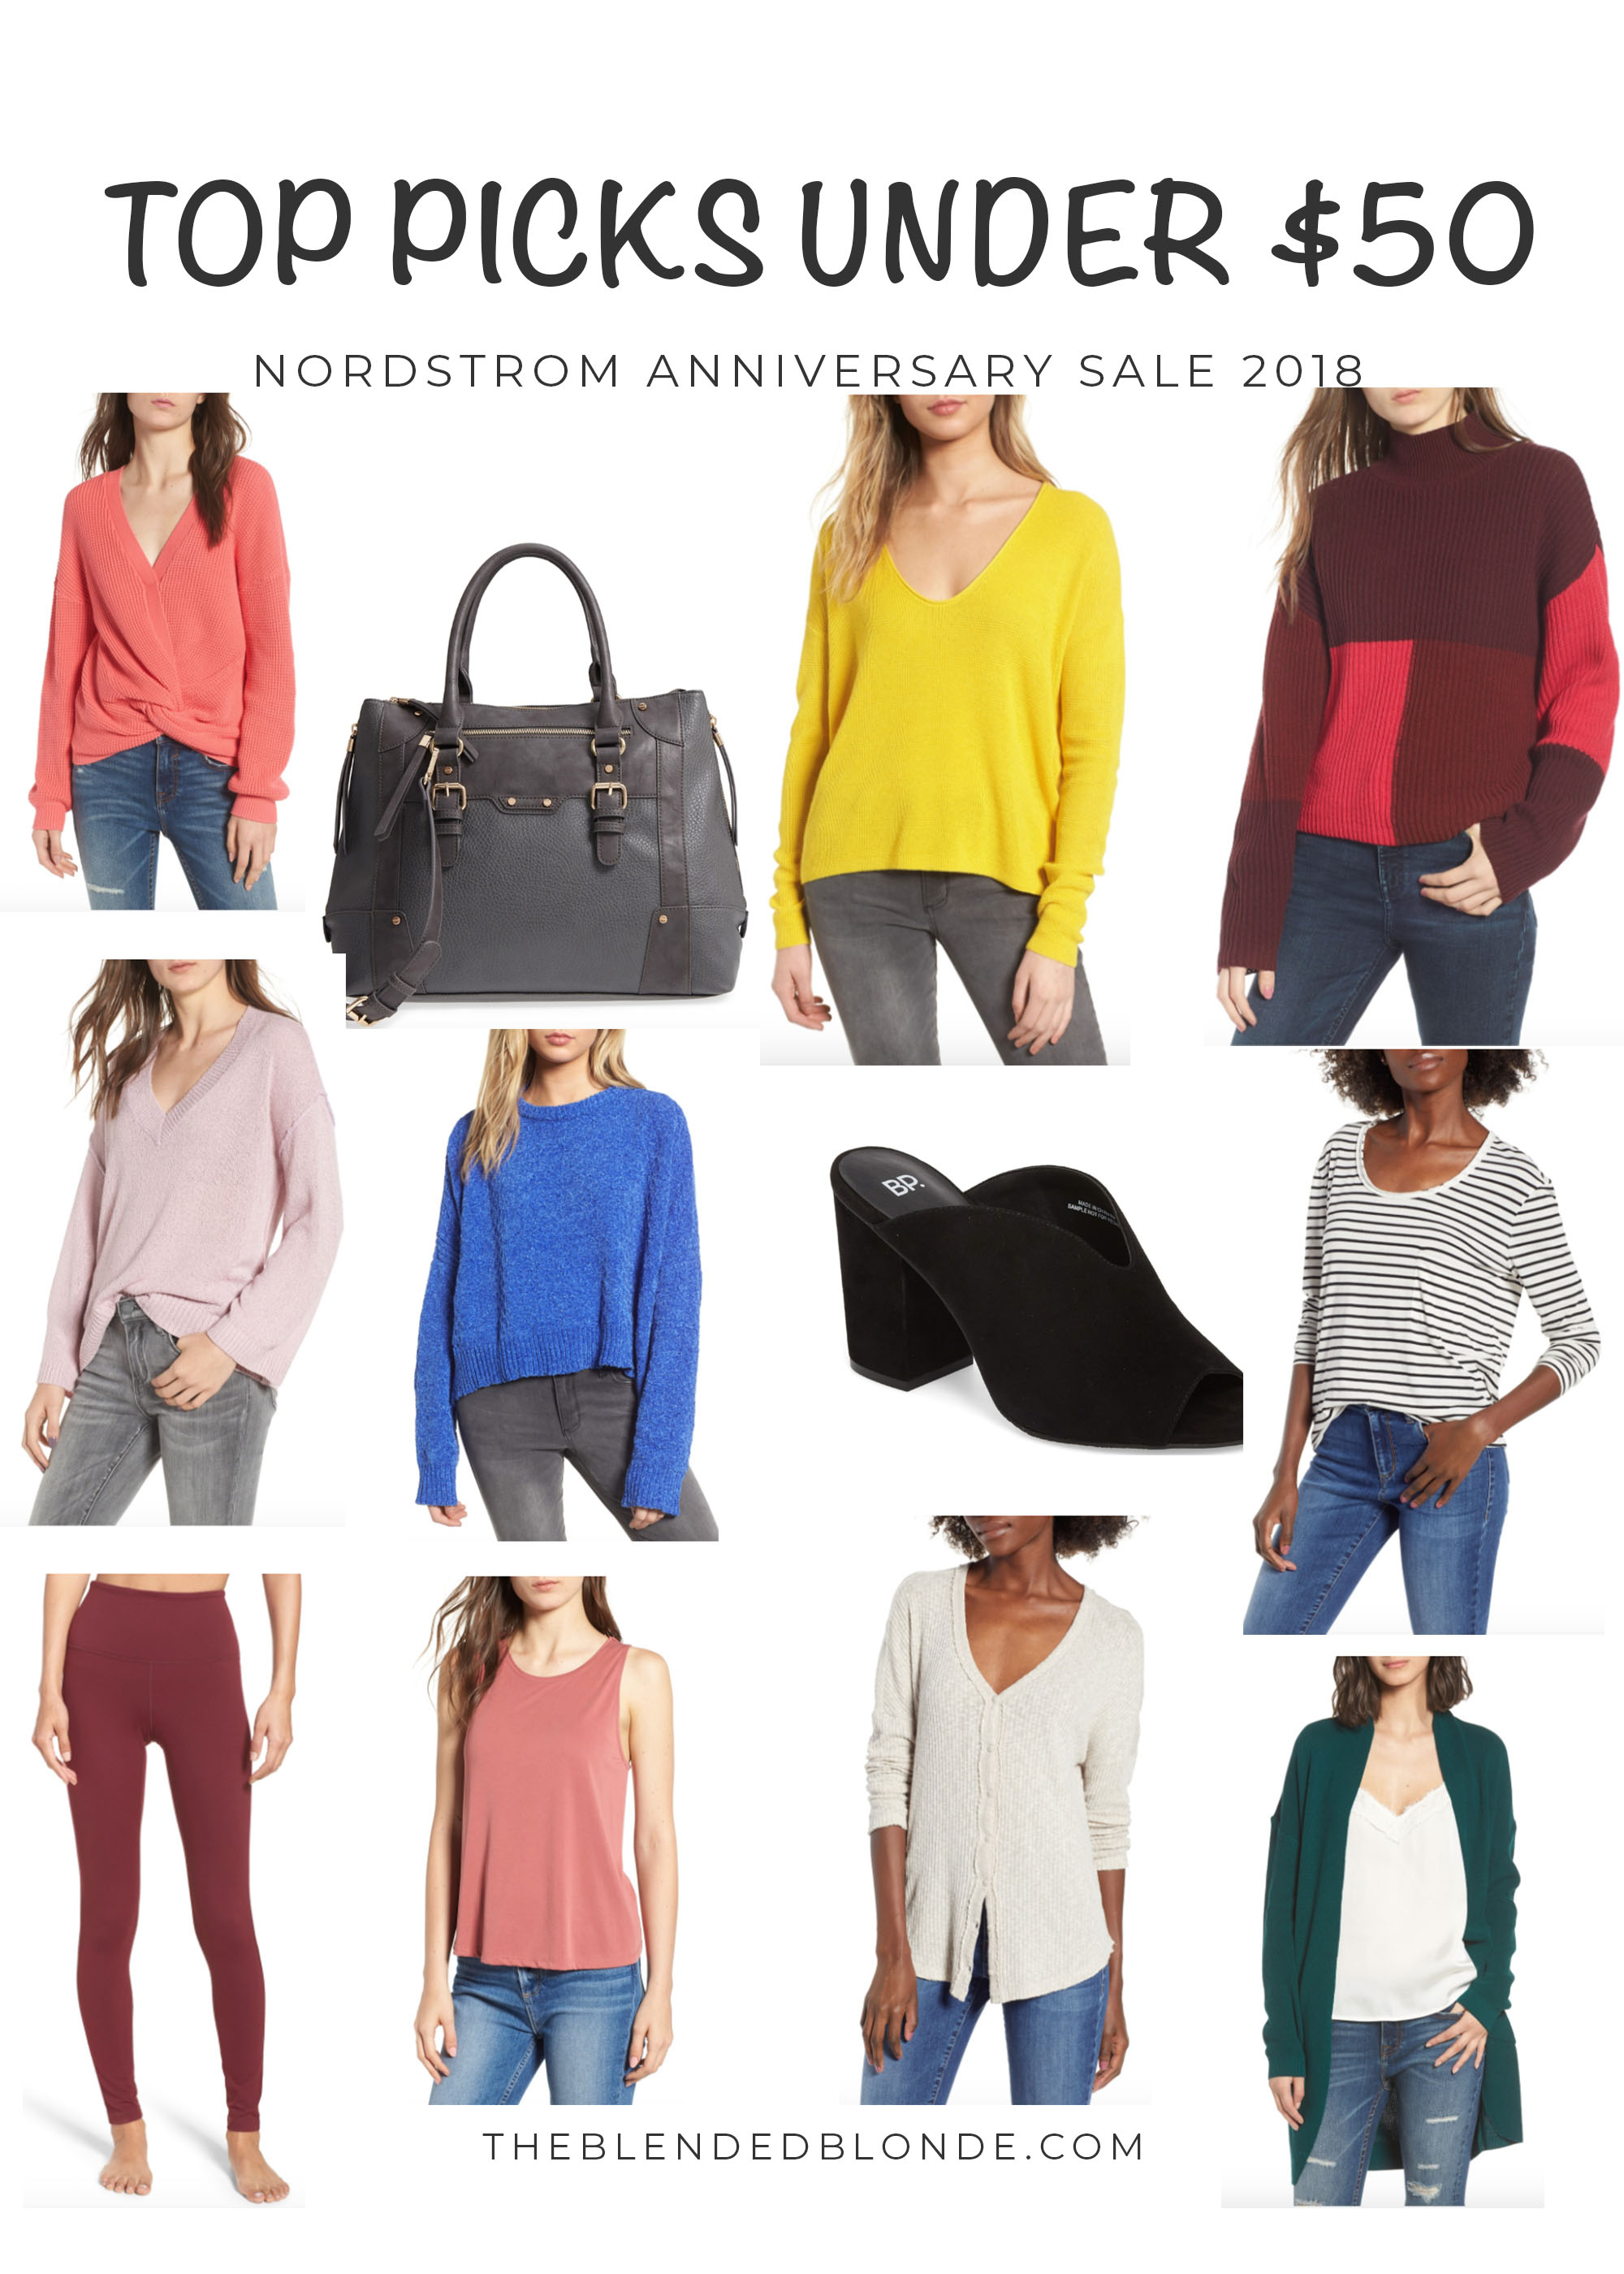 Top picks under $50 from the Nordstrom Anniversary Sale 2018